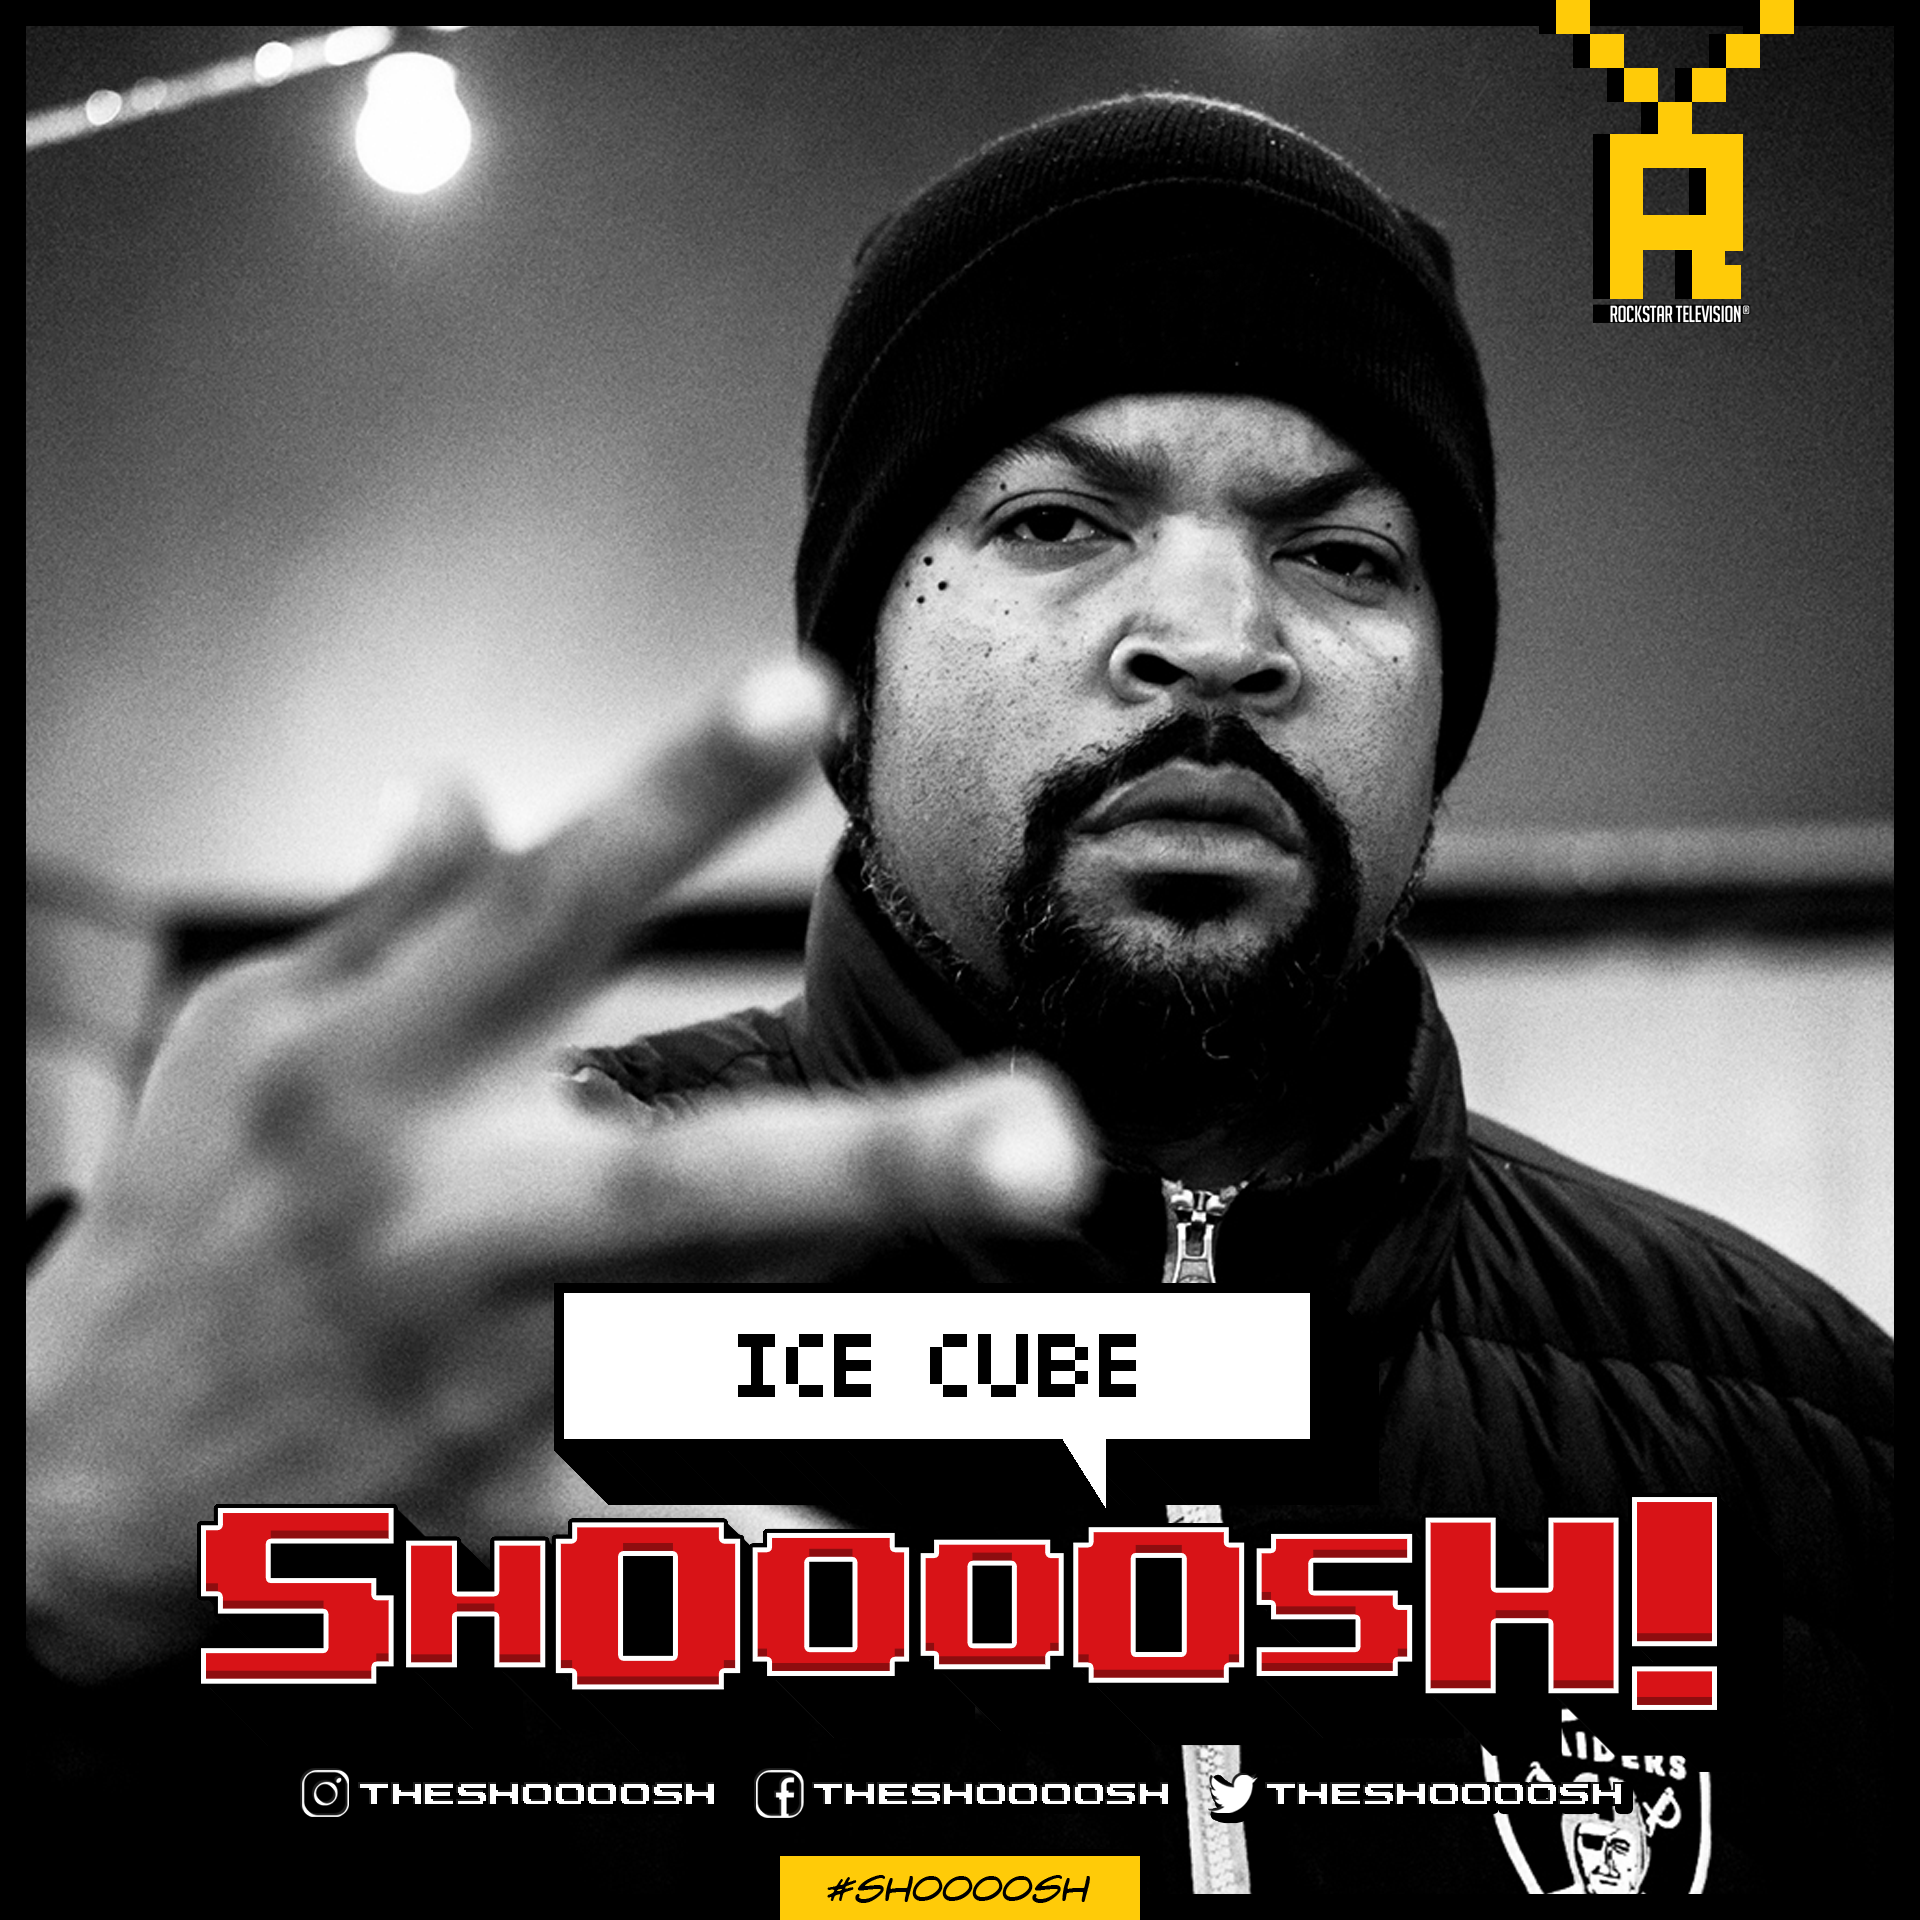 SHOOOOSH! ICE CUBE00001